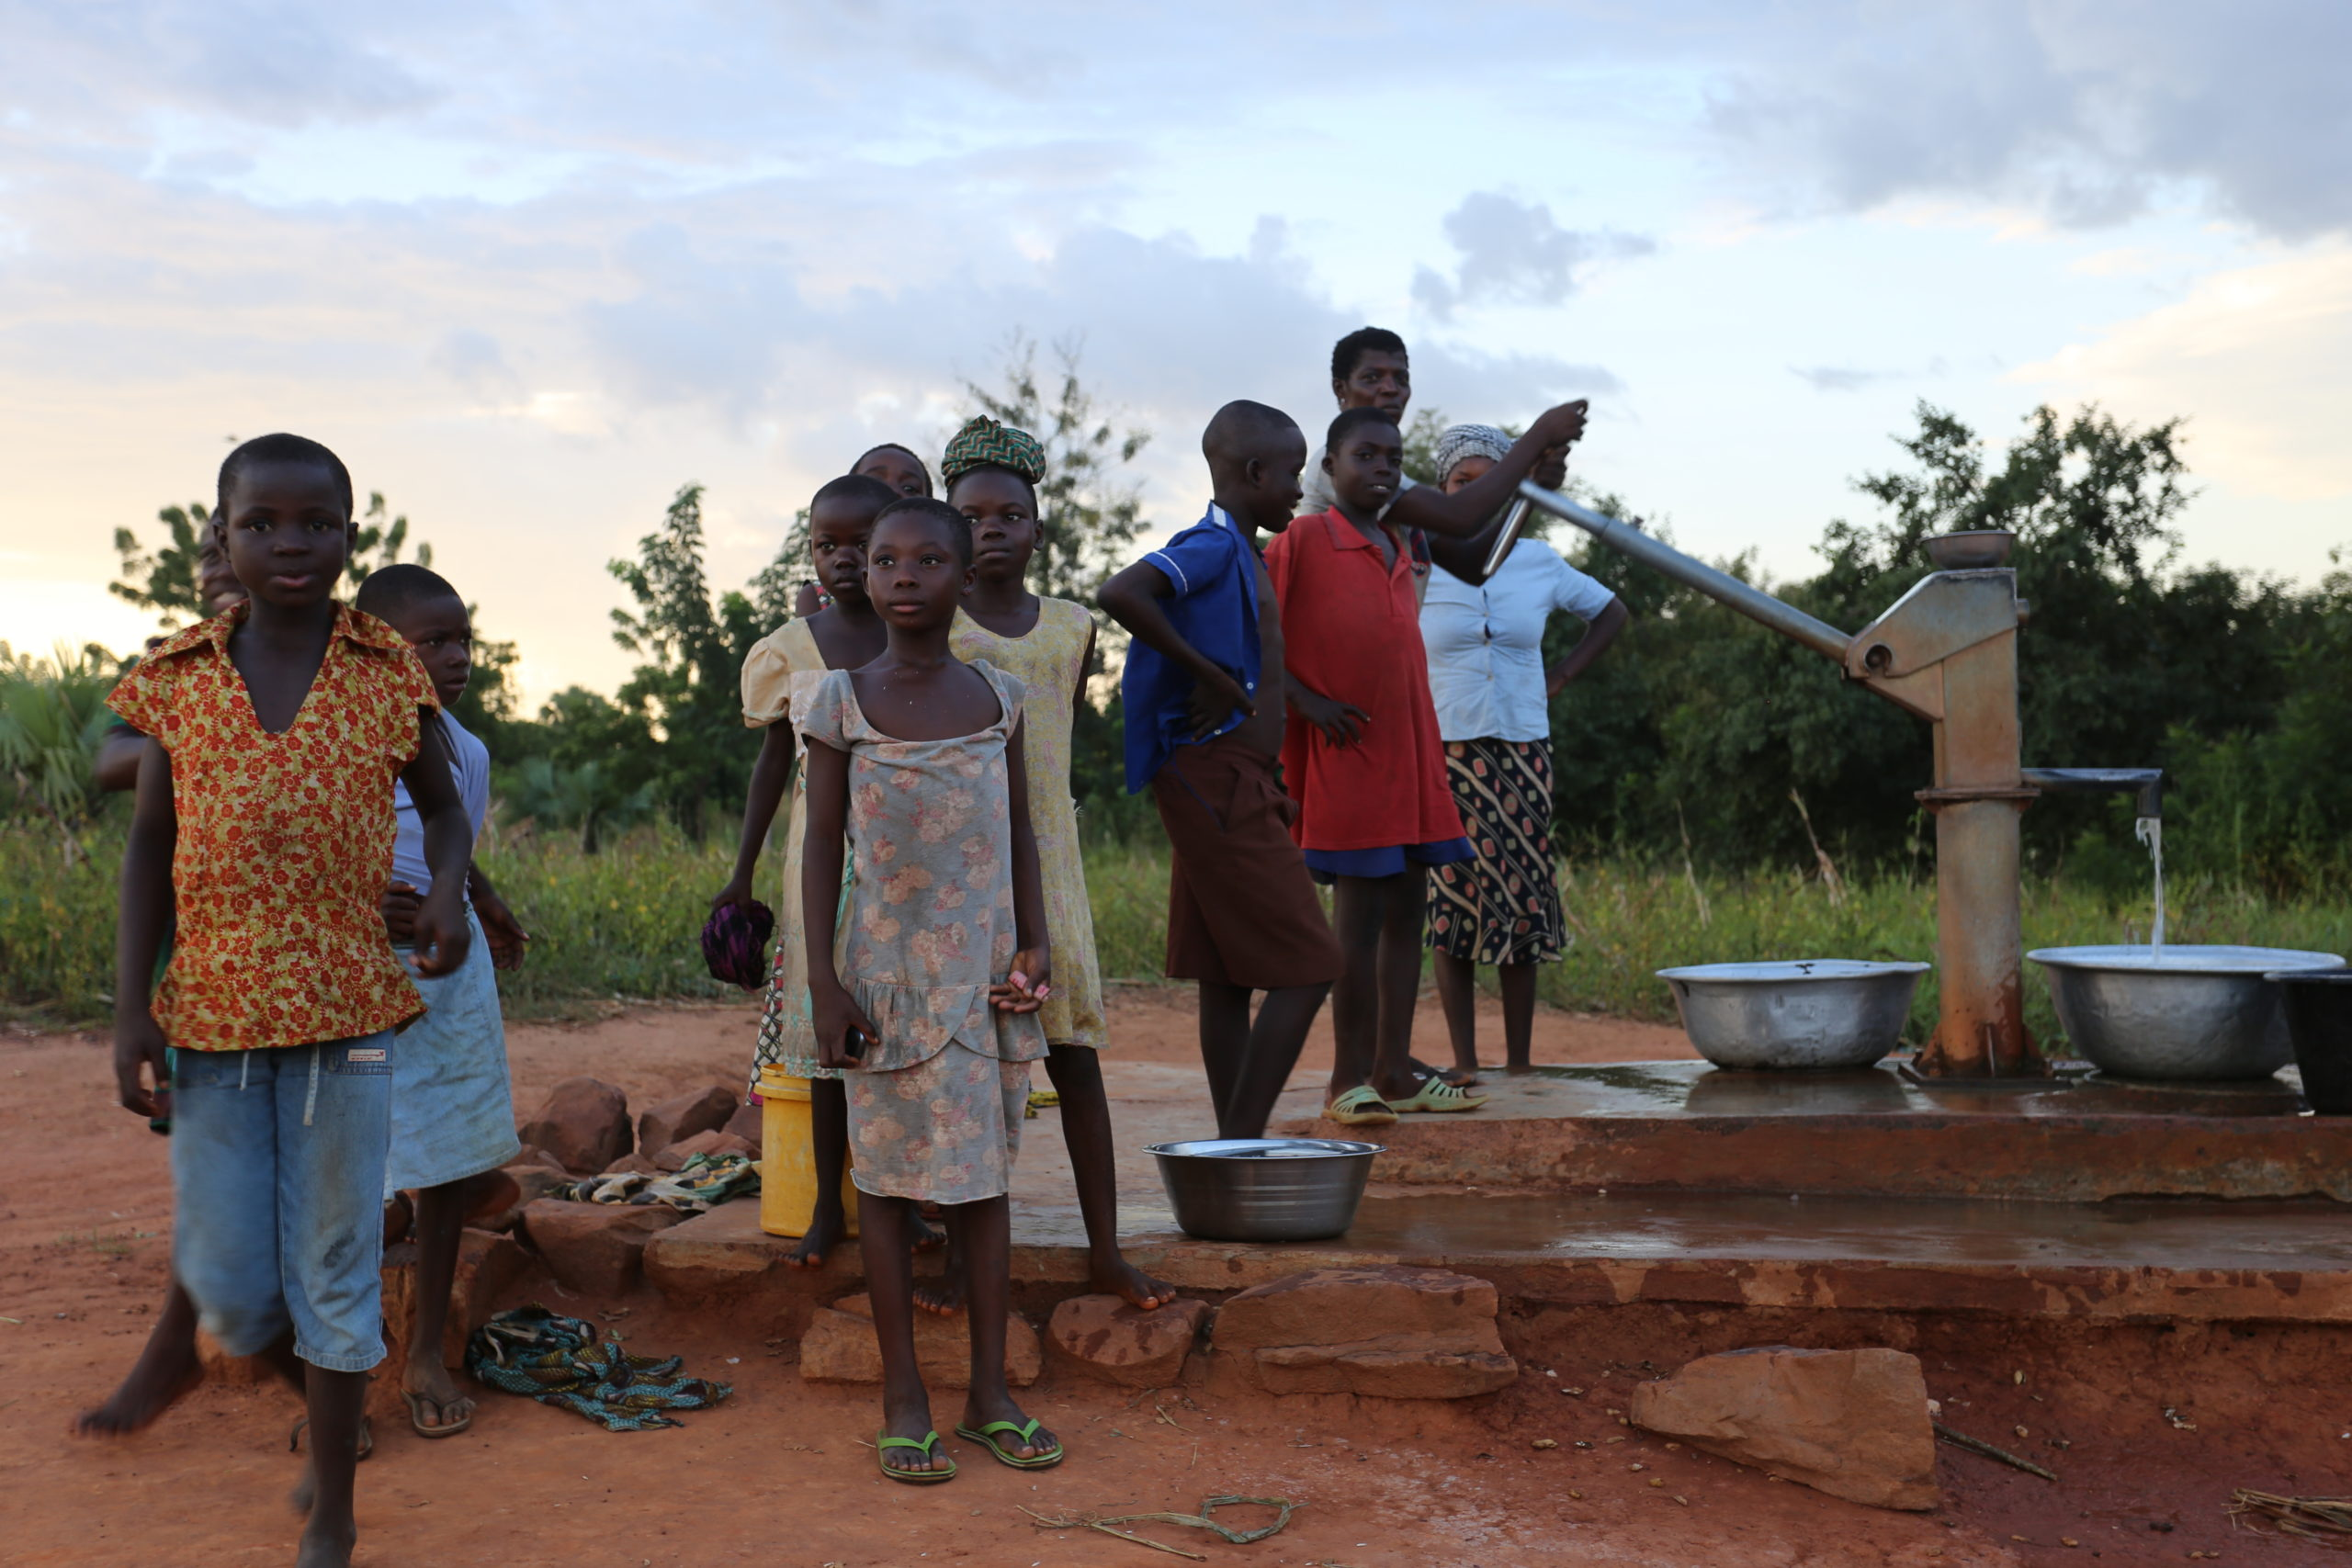 Local Drilling Company Provides Life-Giving Water to Millions of People in Africa